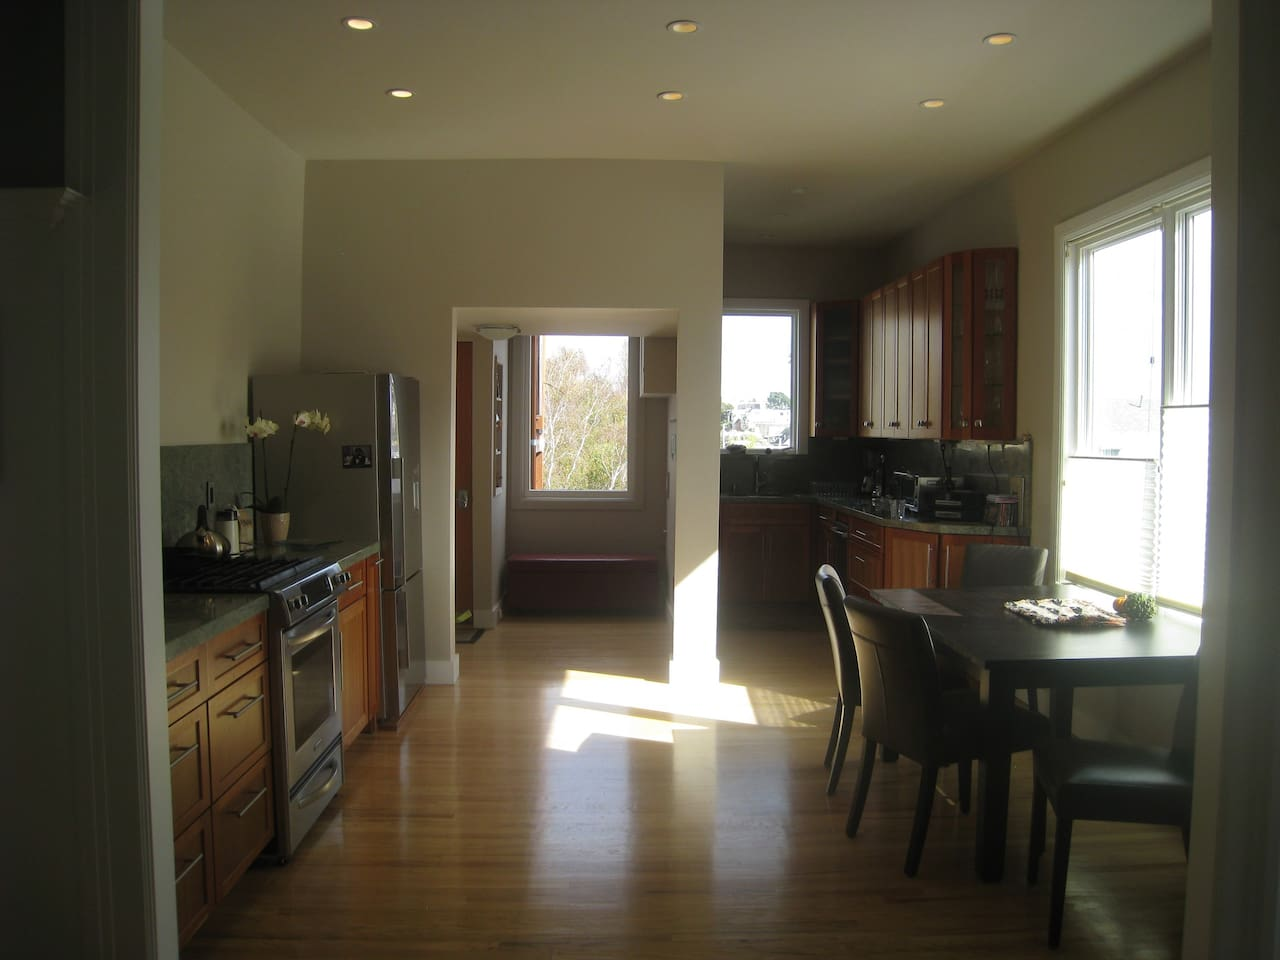 Dining & kitchen space.